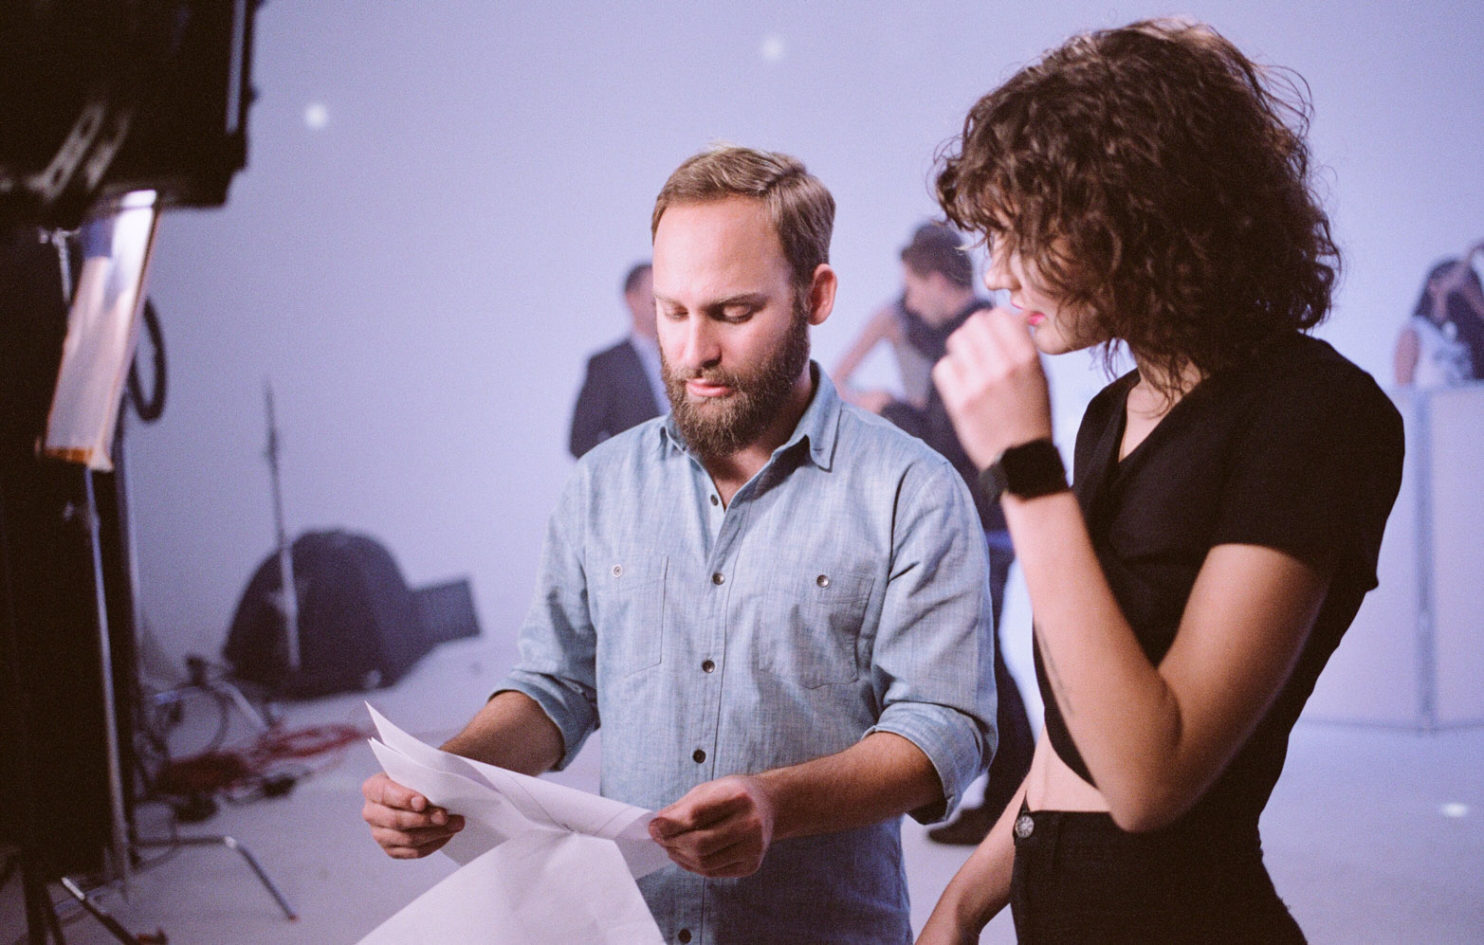 A Byline Video Producer consults with an actress / model on-set in the studio